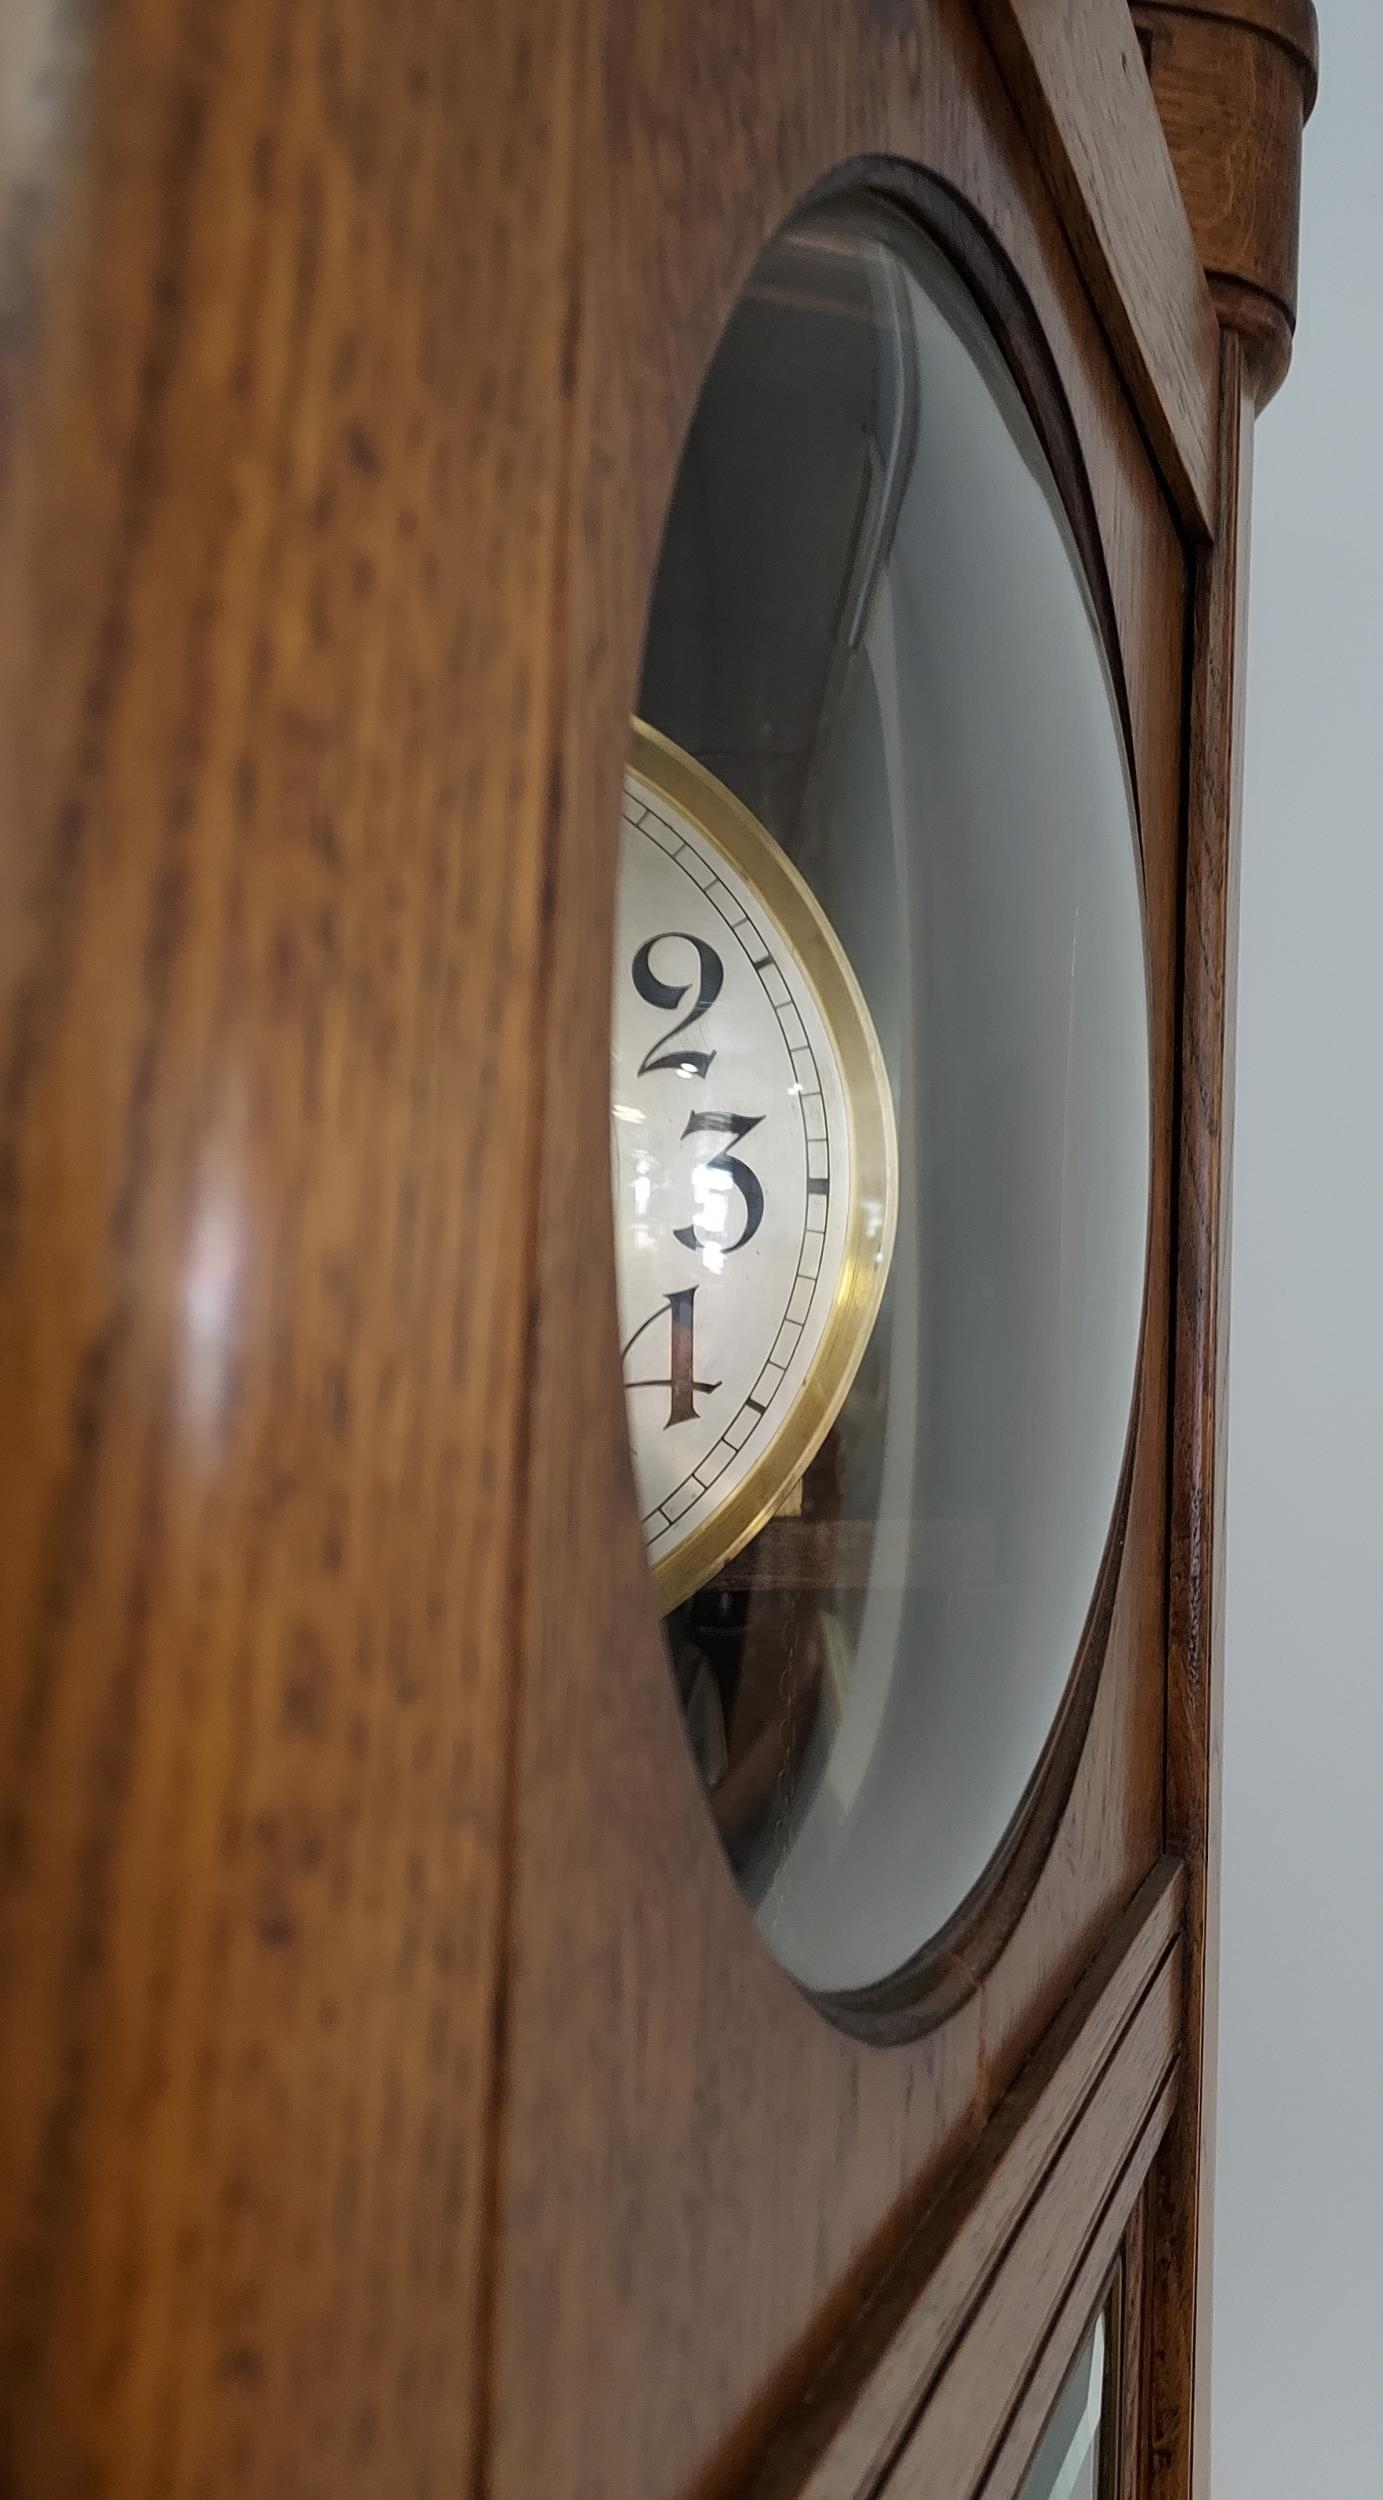 An oak cased Grandfather clock, with hand carved foliage design to the upper section, silver and - Image 4 of 7